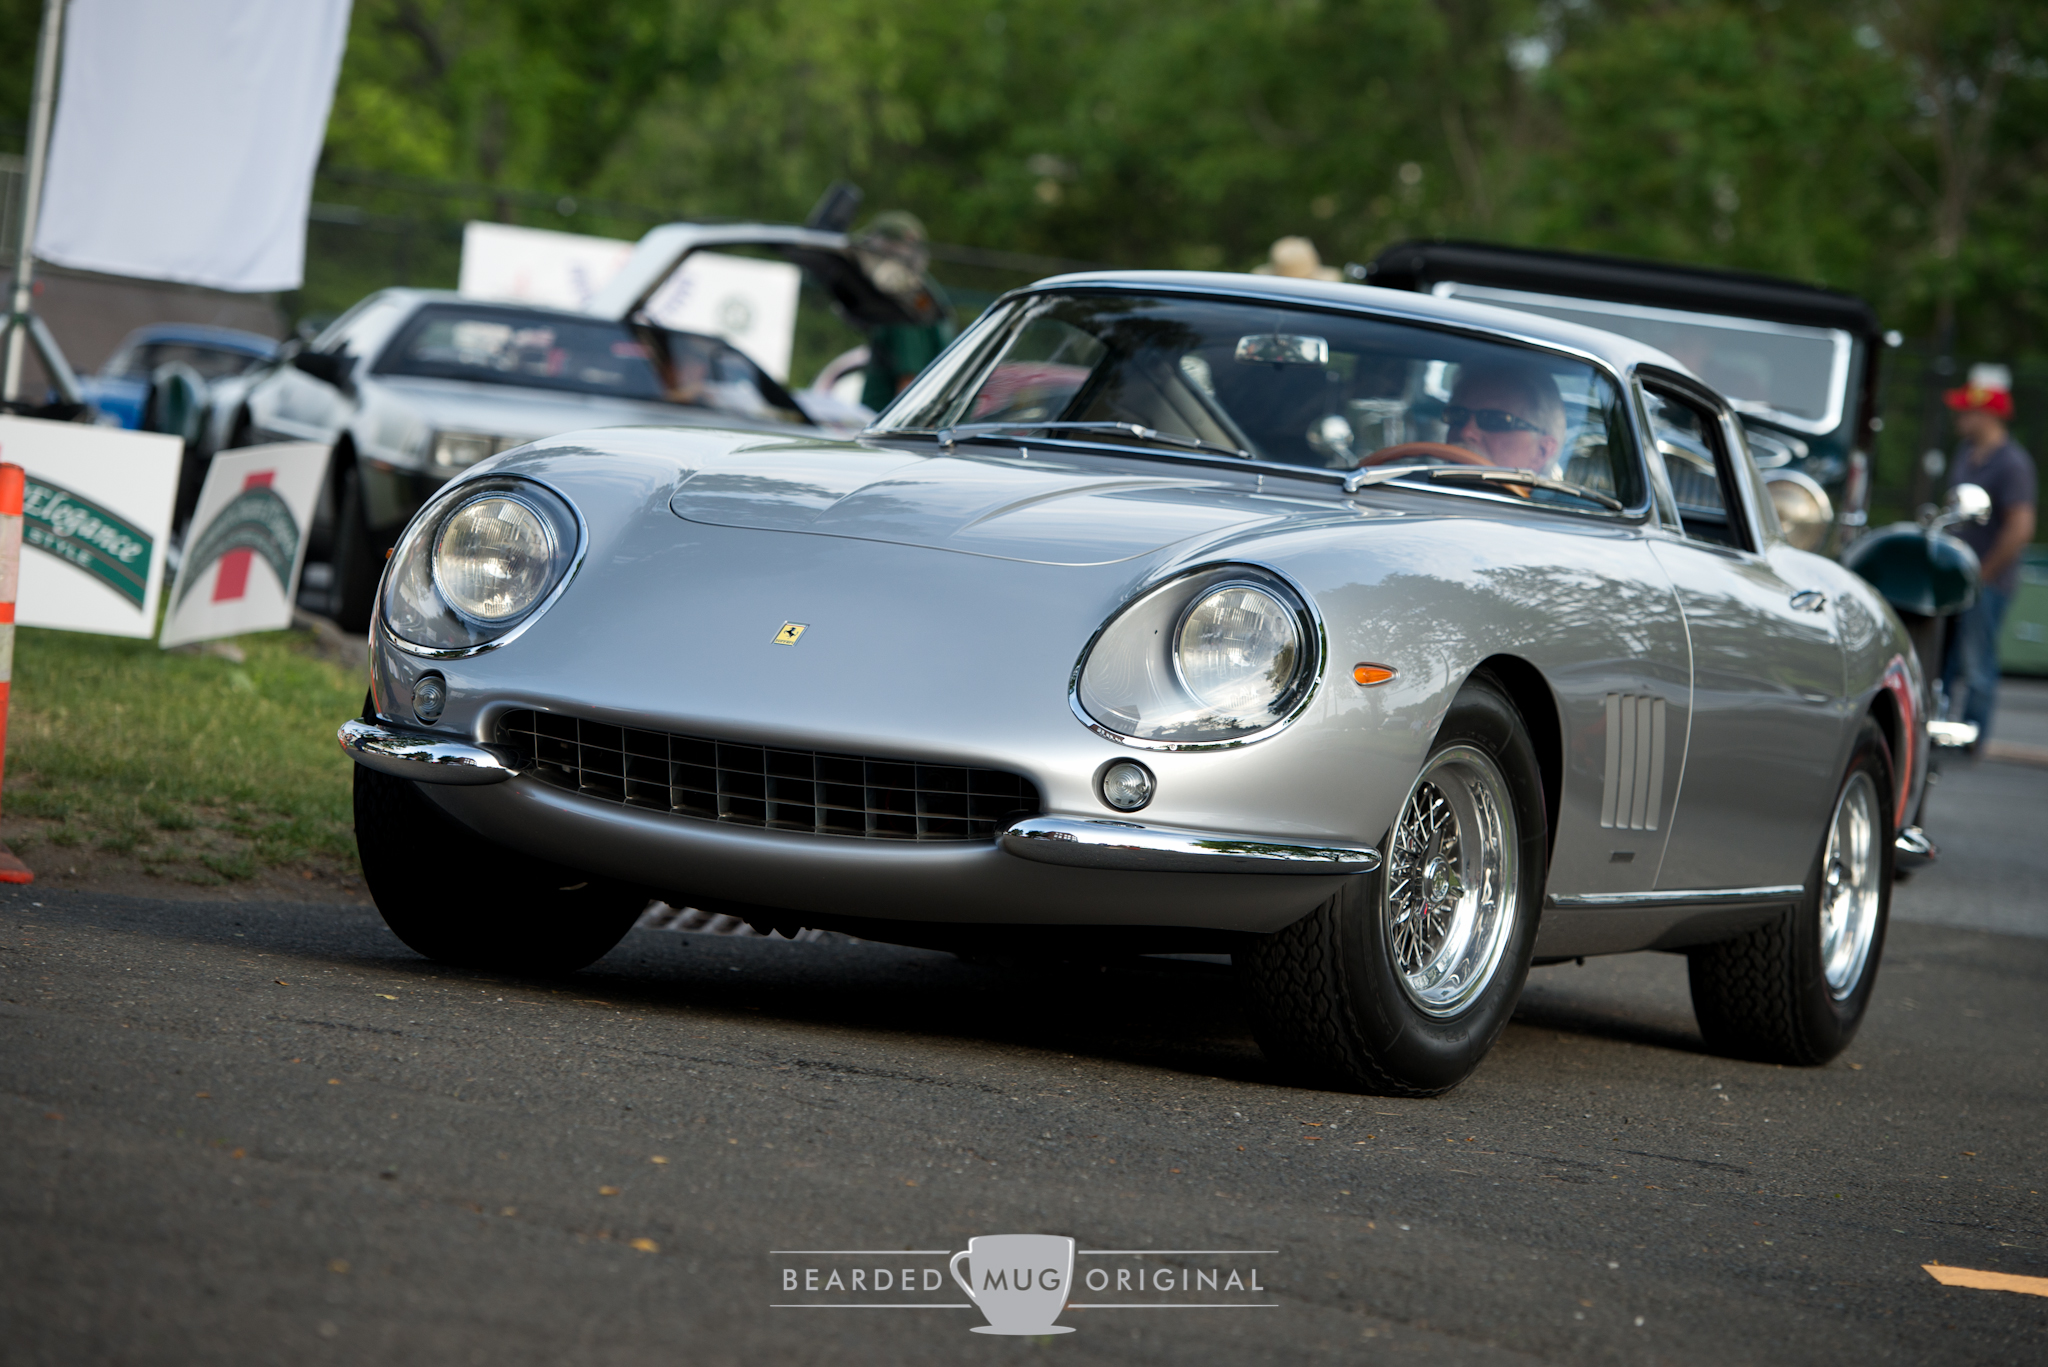 Wayne Carini entering the show grounds in his beautiful 1967 Ferrari 275 GTB/4.